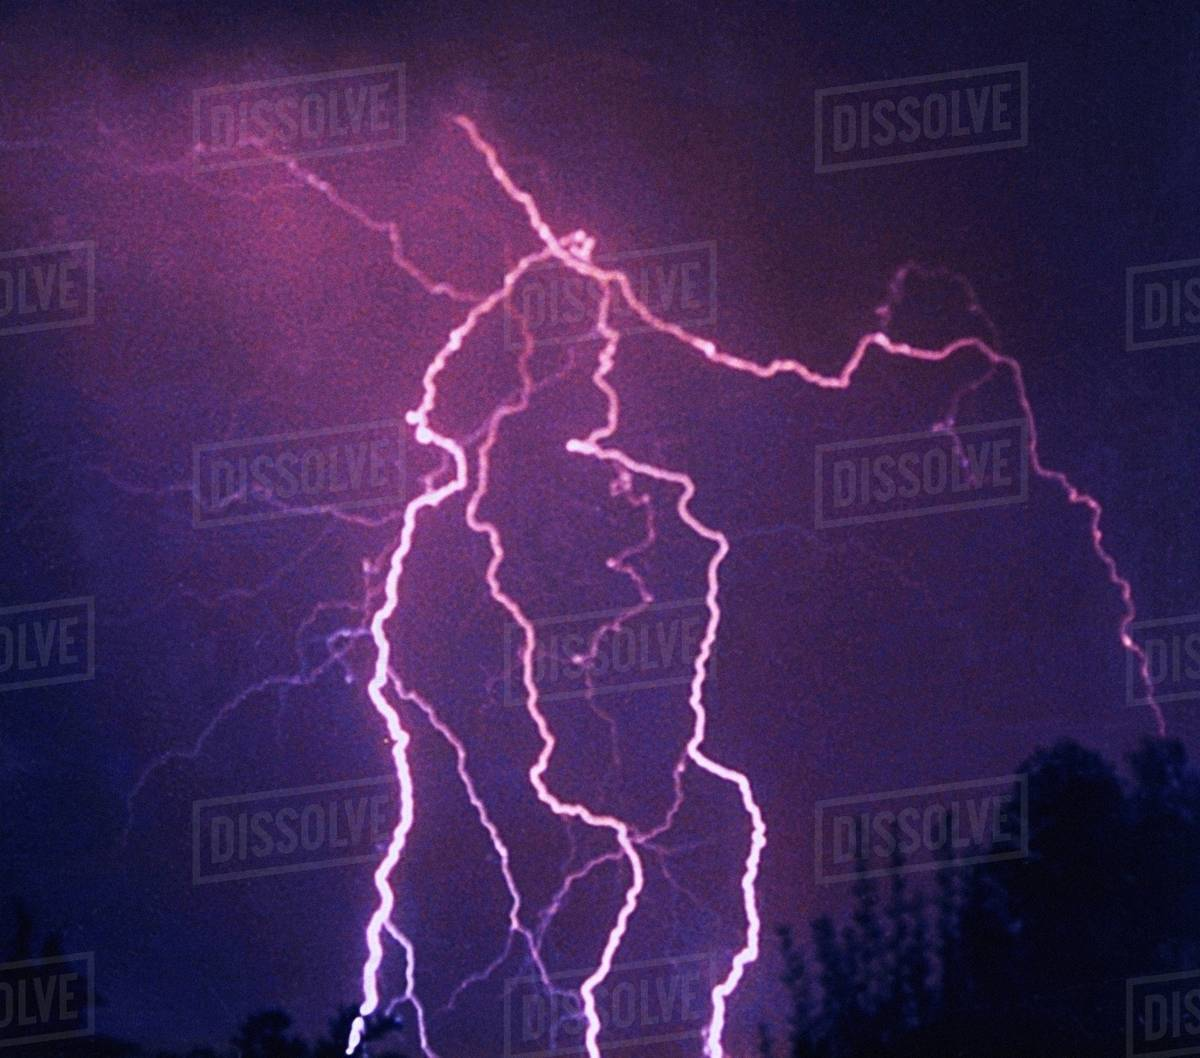 Lightning photograph from NOAA's National Severe Storms Laboratory (NSSL) Collection Royalty-free stock photo